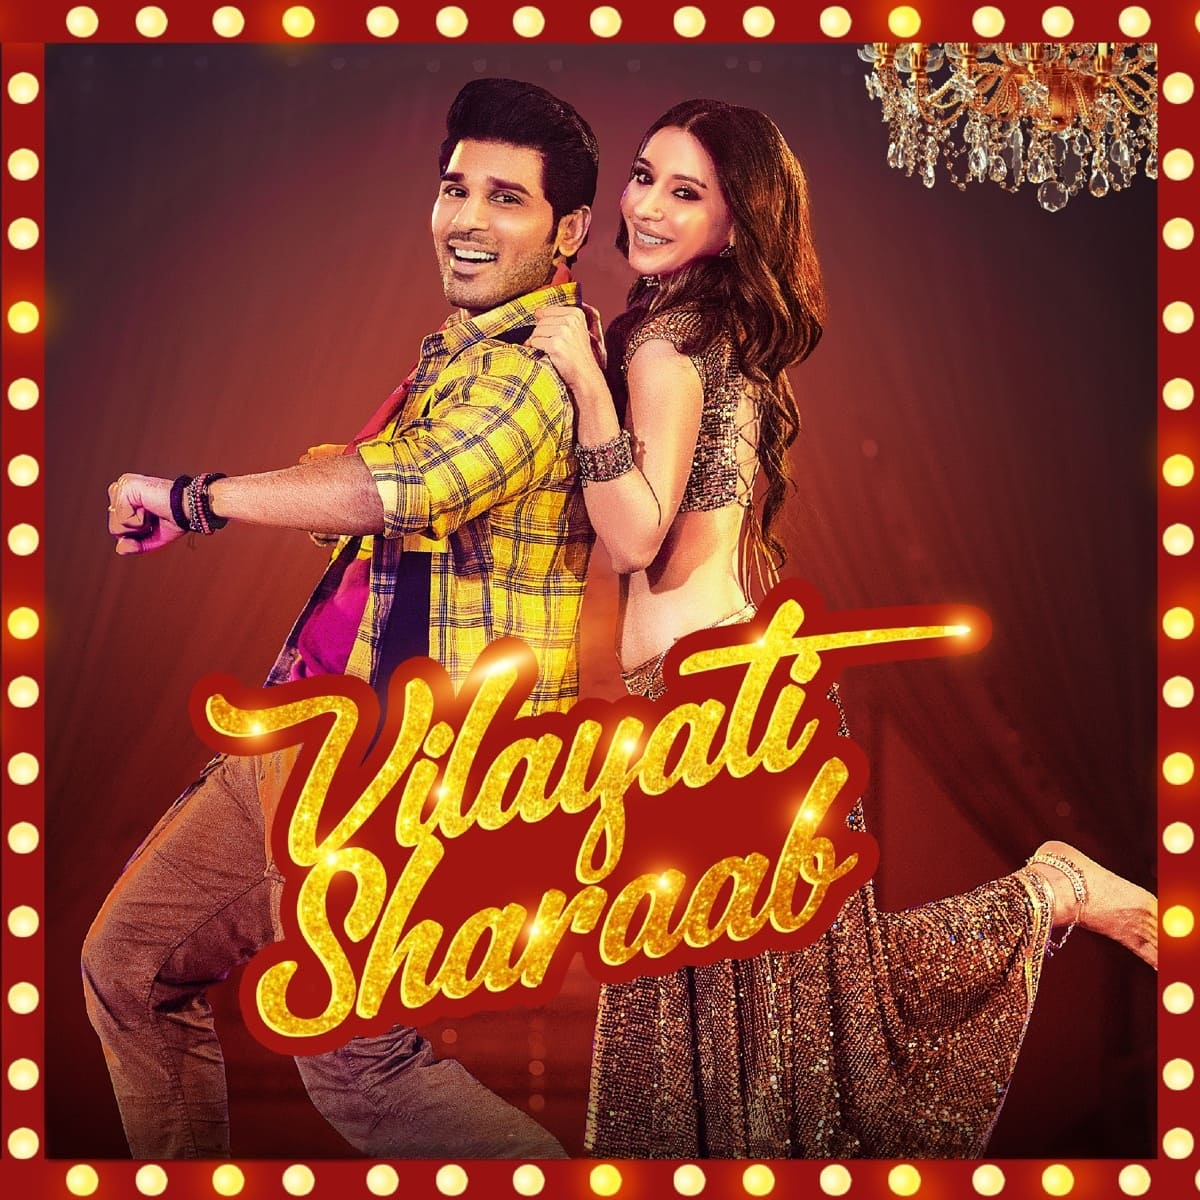 Vilayati Sharaab Darshan Raval Song Download MP3 With Lyrics